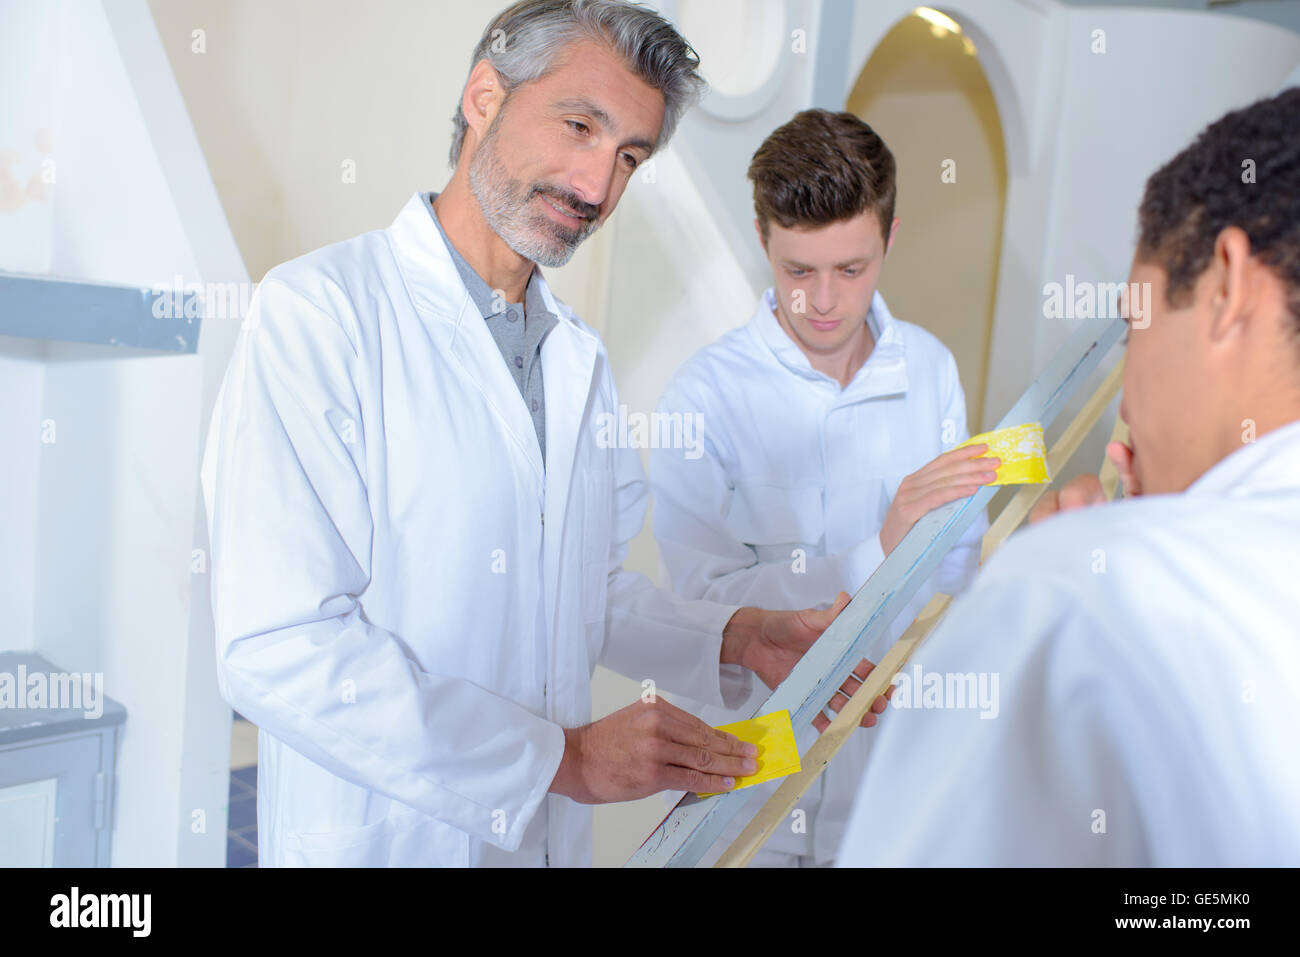 Teacher and student rubbing down a banister - Stock Image